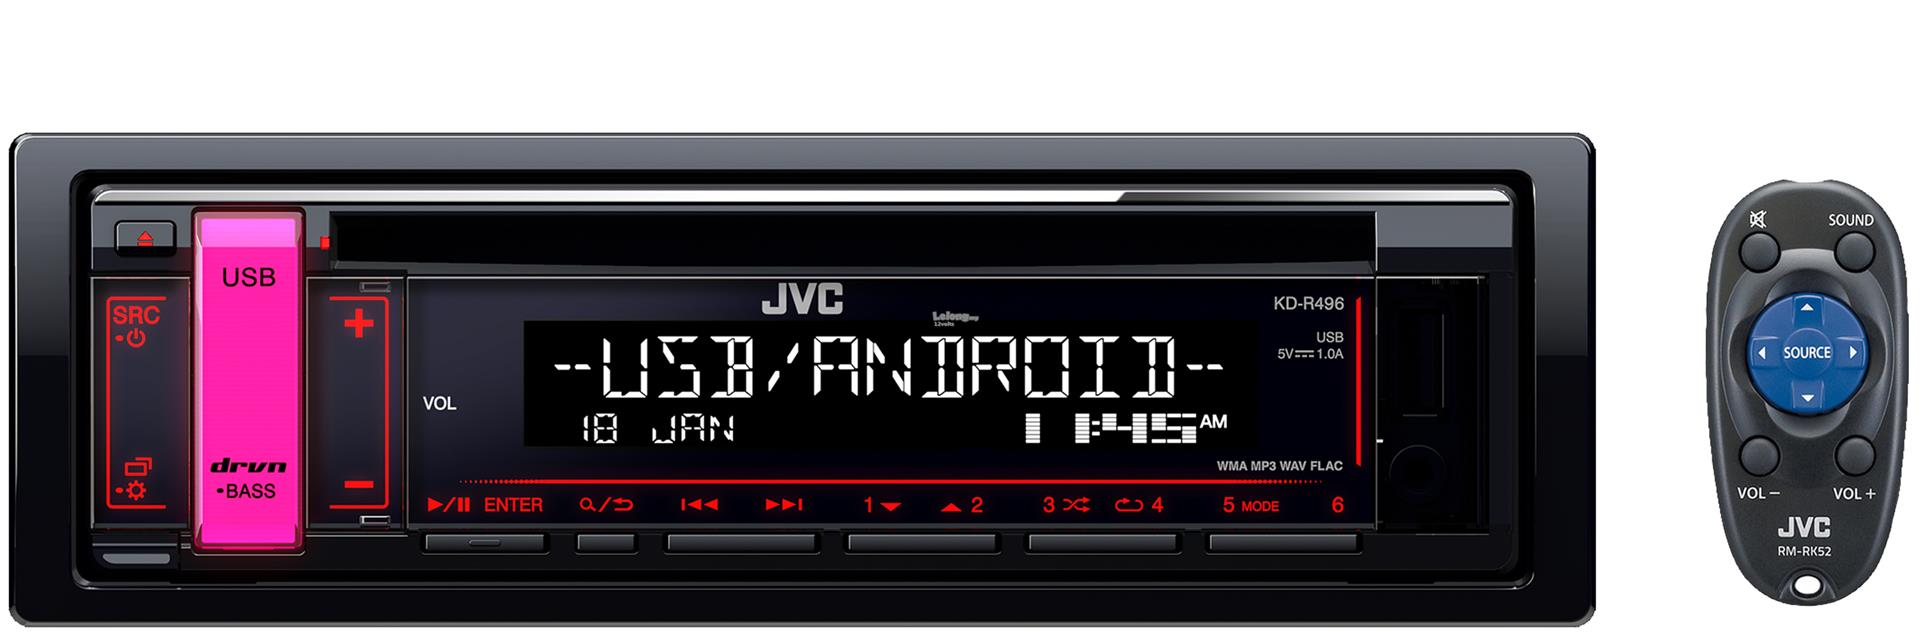 JVC KD-R496 Single DIN CD Front USB Aux Car Stereo Receiver